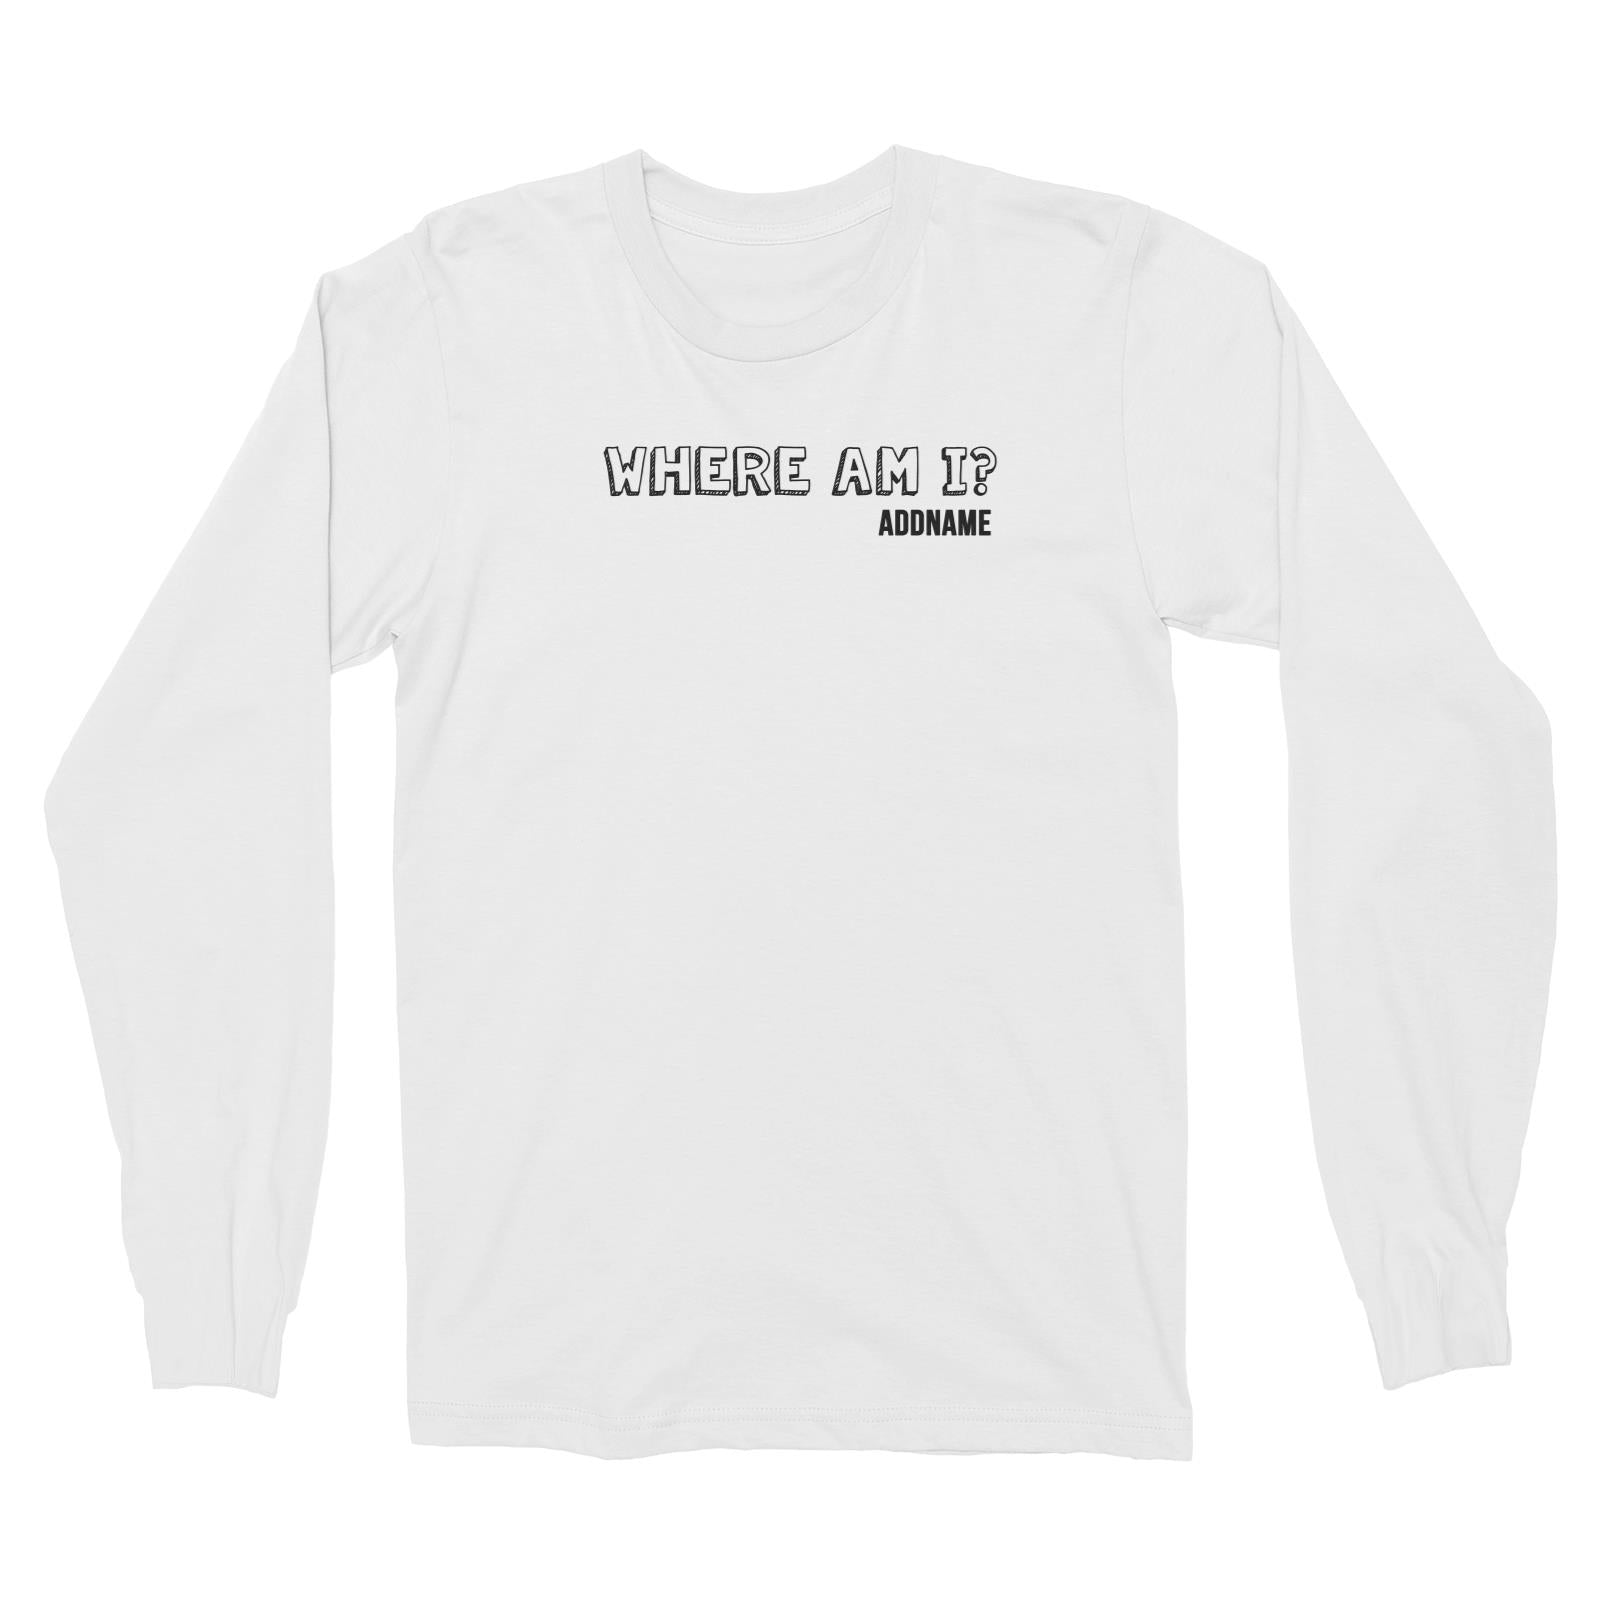 Couple Series Where Am I Addname Long Sleeve Unisex T-Shirt